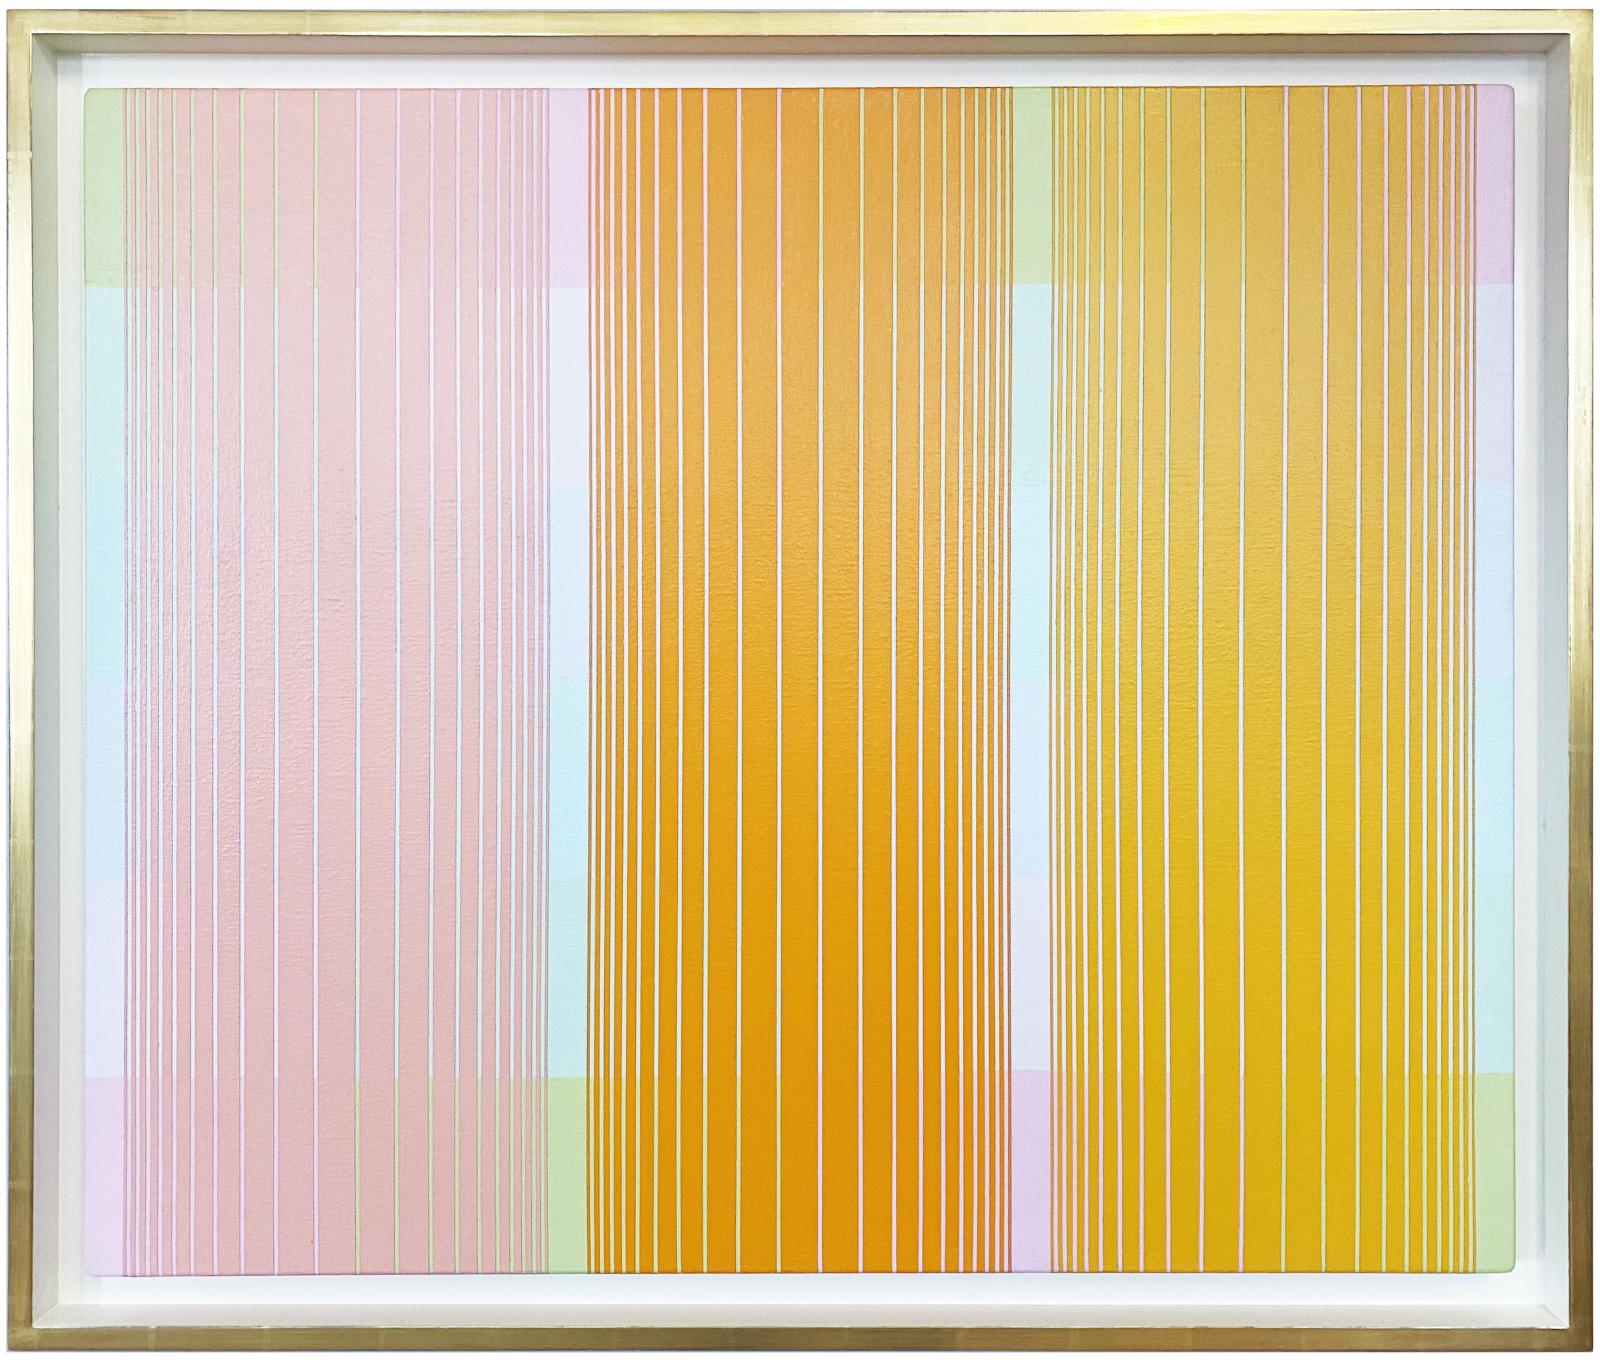 Trisected: Yellow to Pink